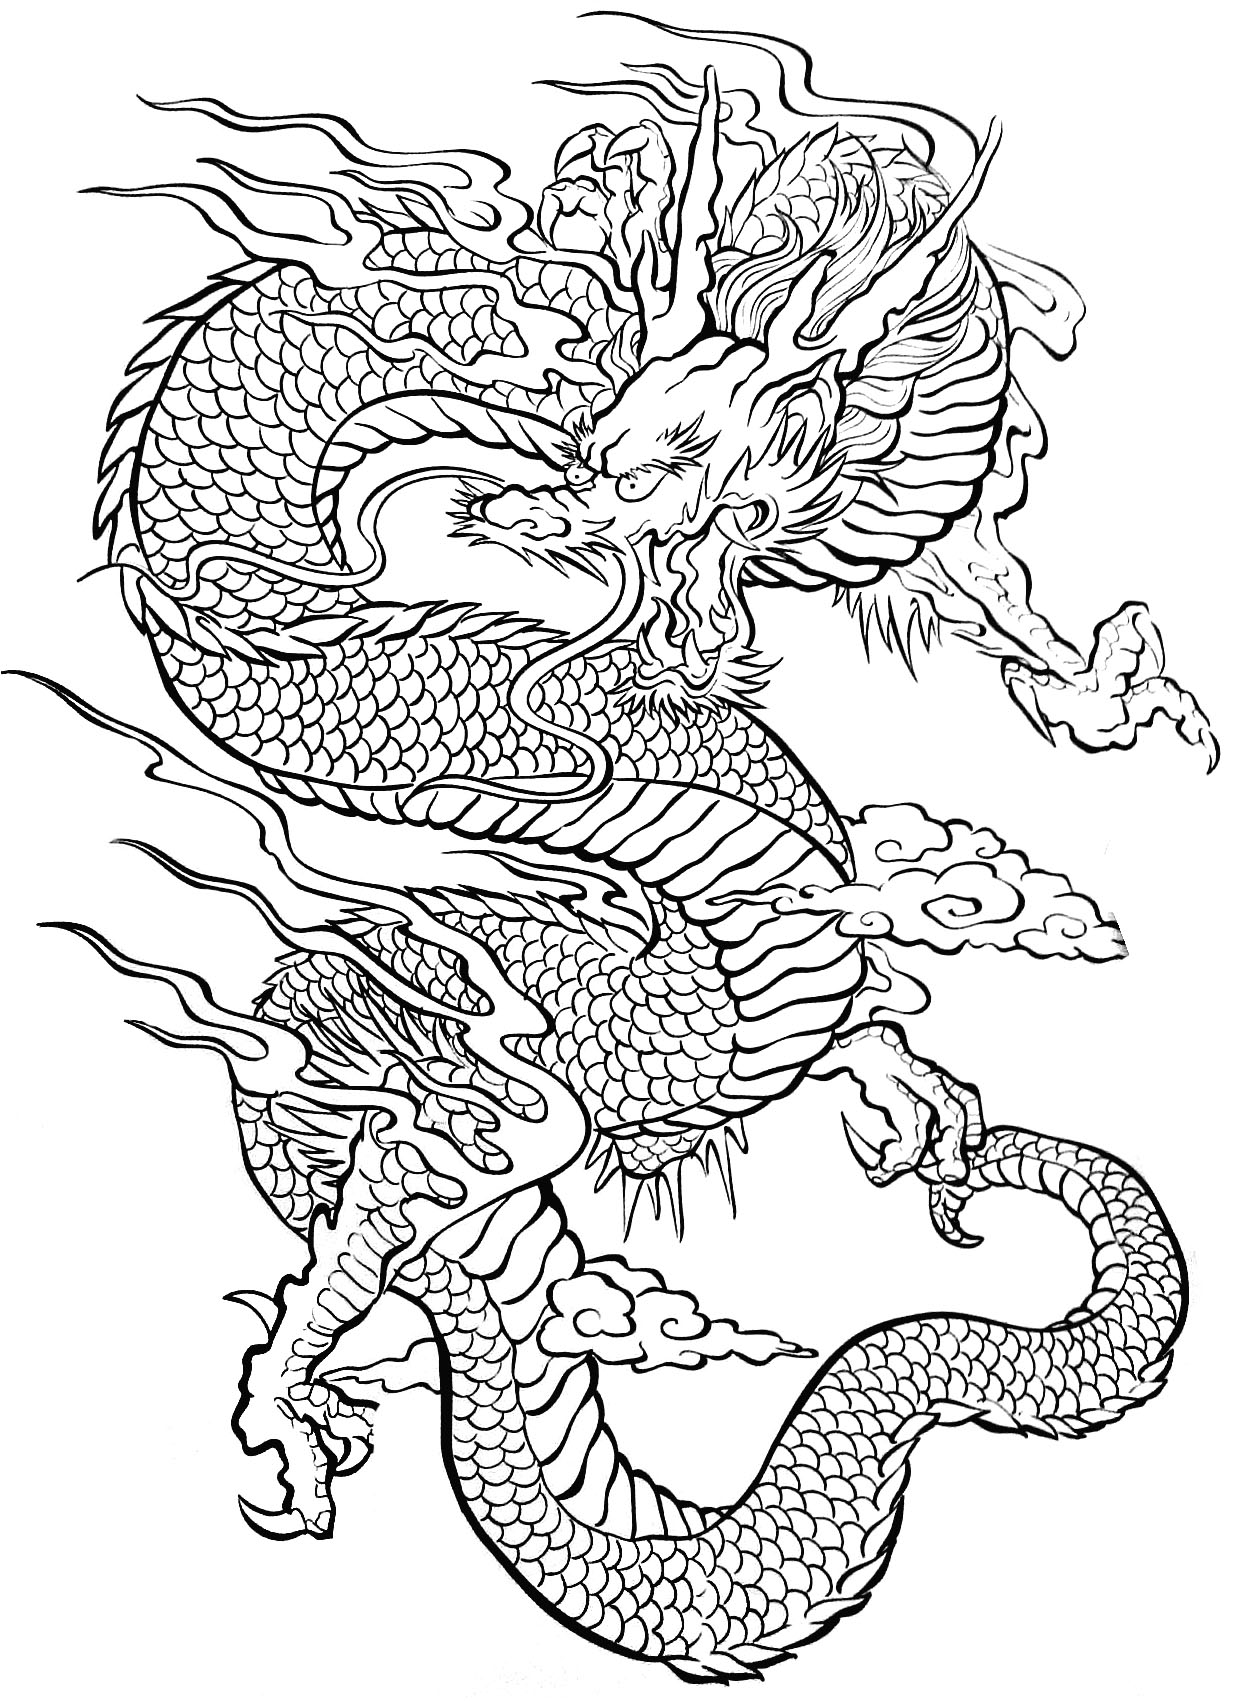 tattoo coloring pages hottoe sun moon cloud sun tattoos coloring tattoo pages